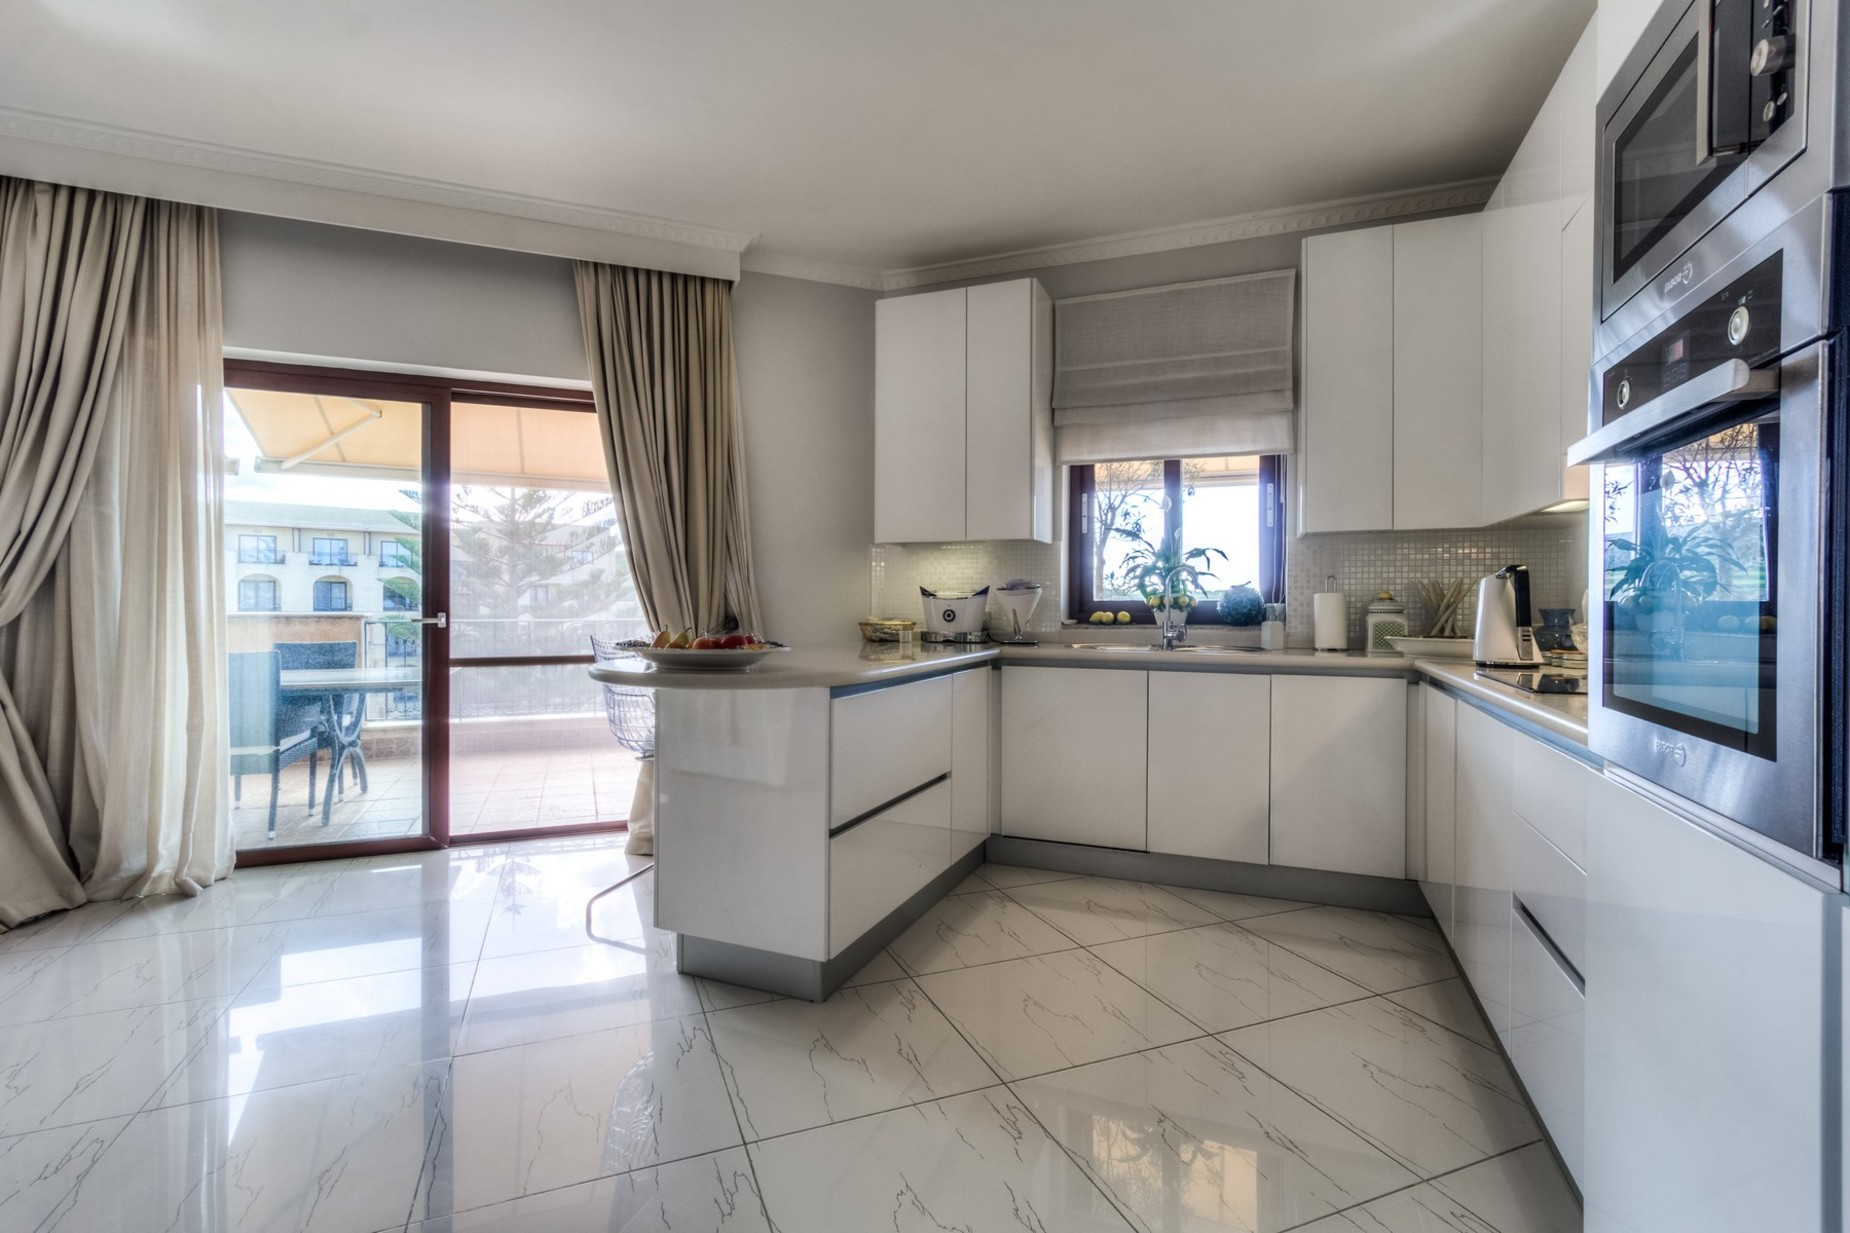 2 bed Apartment For Sale in San Lawrenz, San Lawrenz - thumb 8